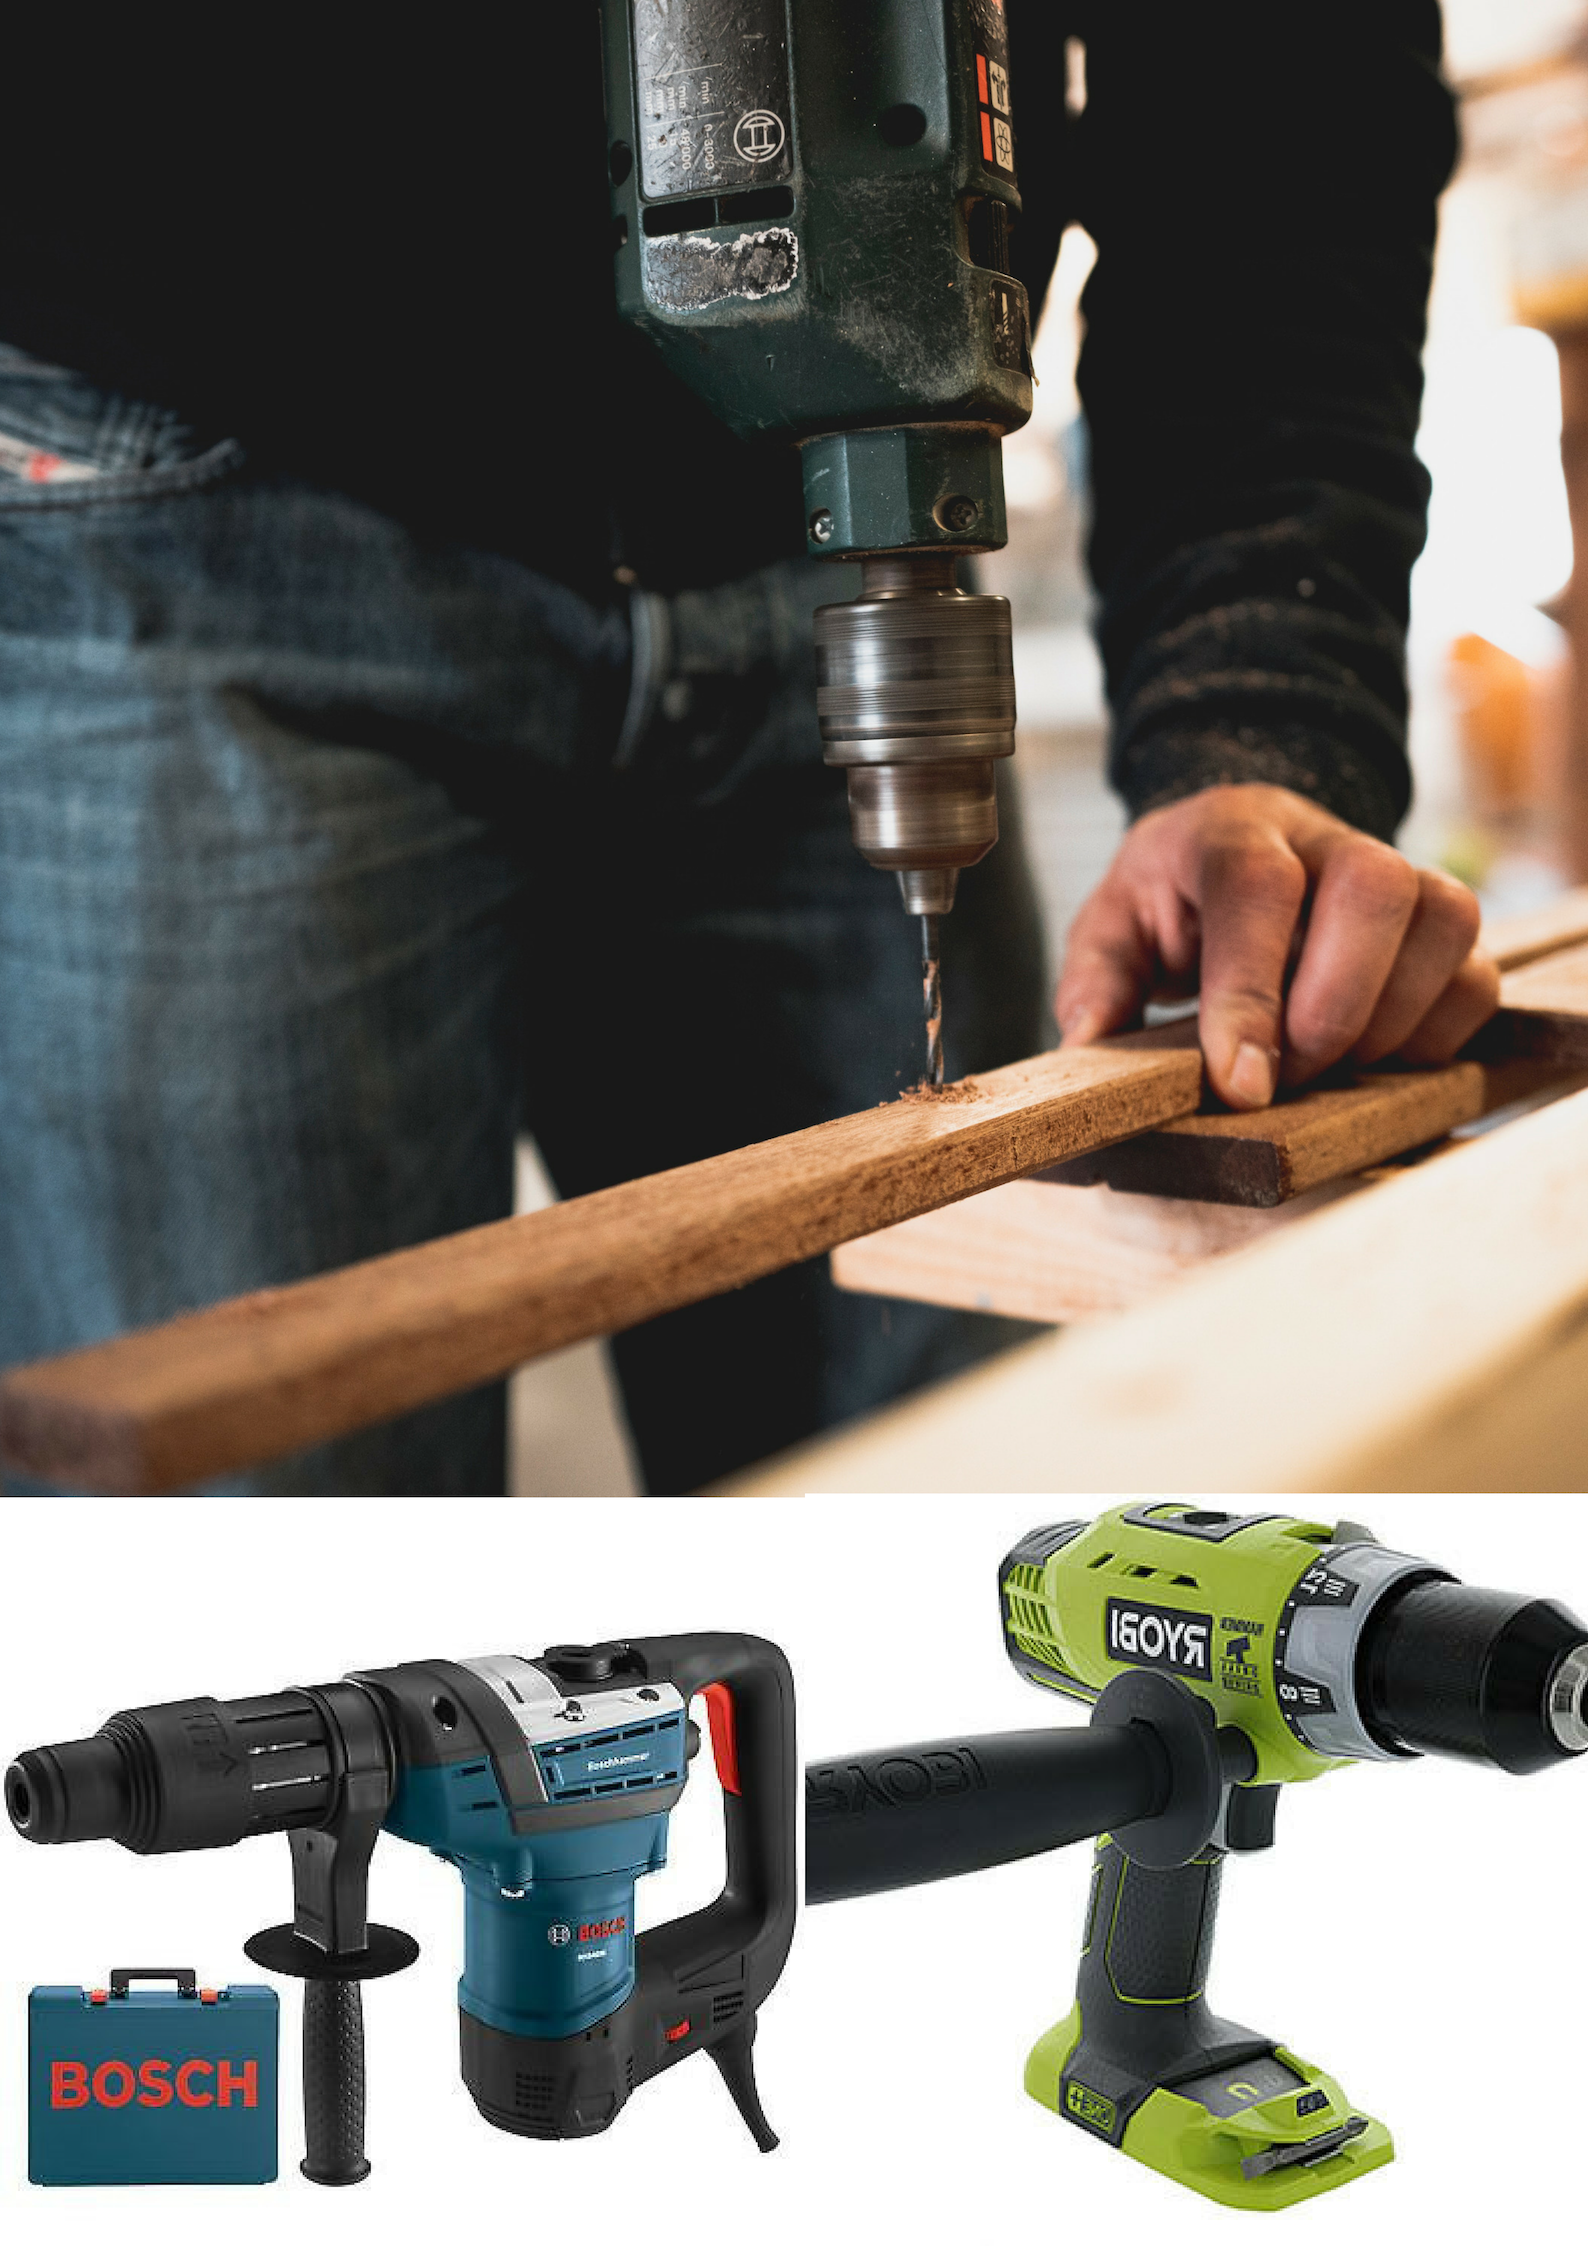 Account Suspended Hammer Drill Drill How To Make Light